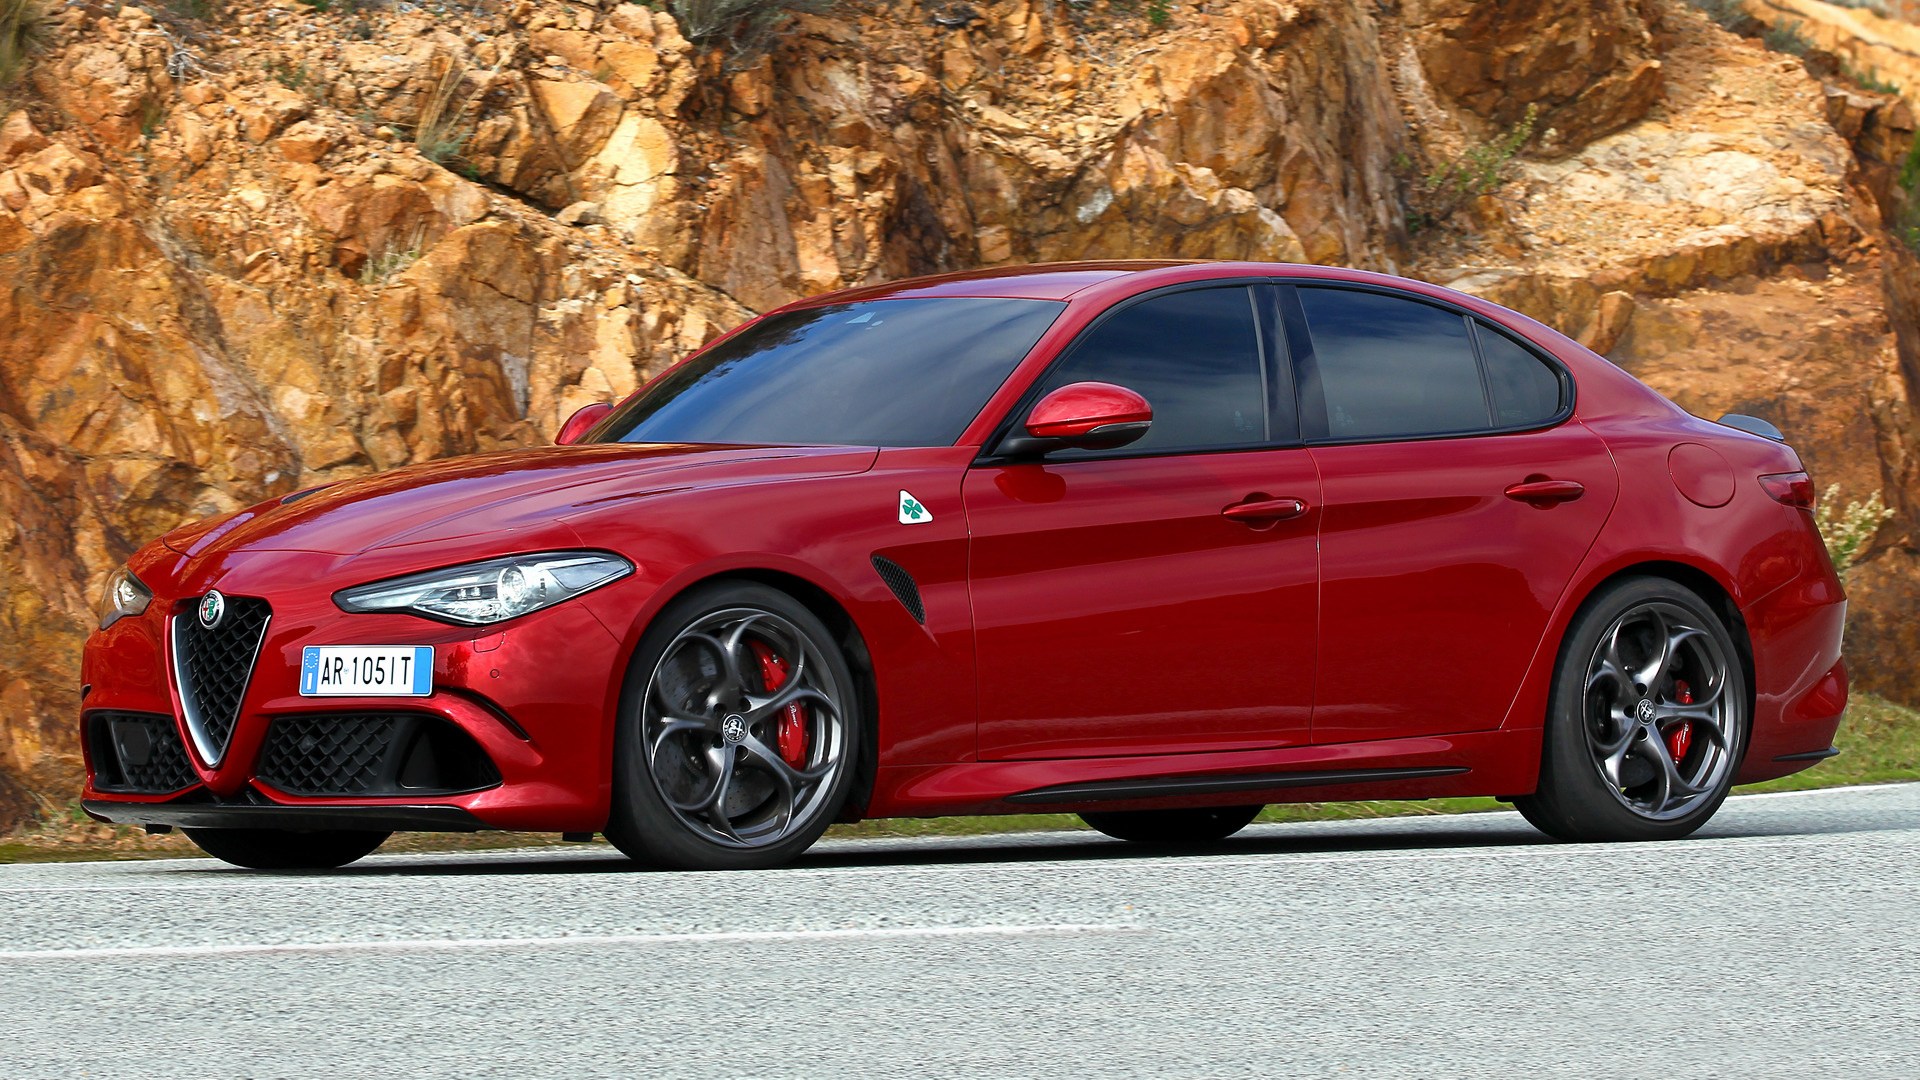 alfa romeo giulia quadrifoglio 2016 wallpapers and hd images car pixel. Black Bedroom Furniture Sets. Home Design Ideas